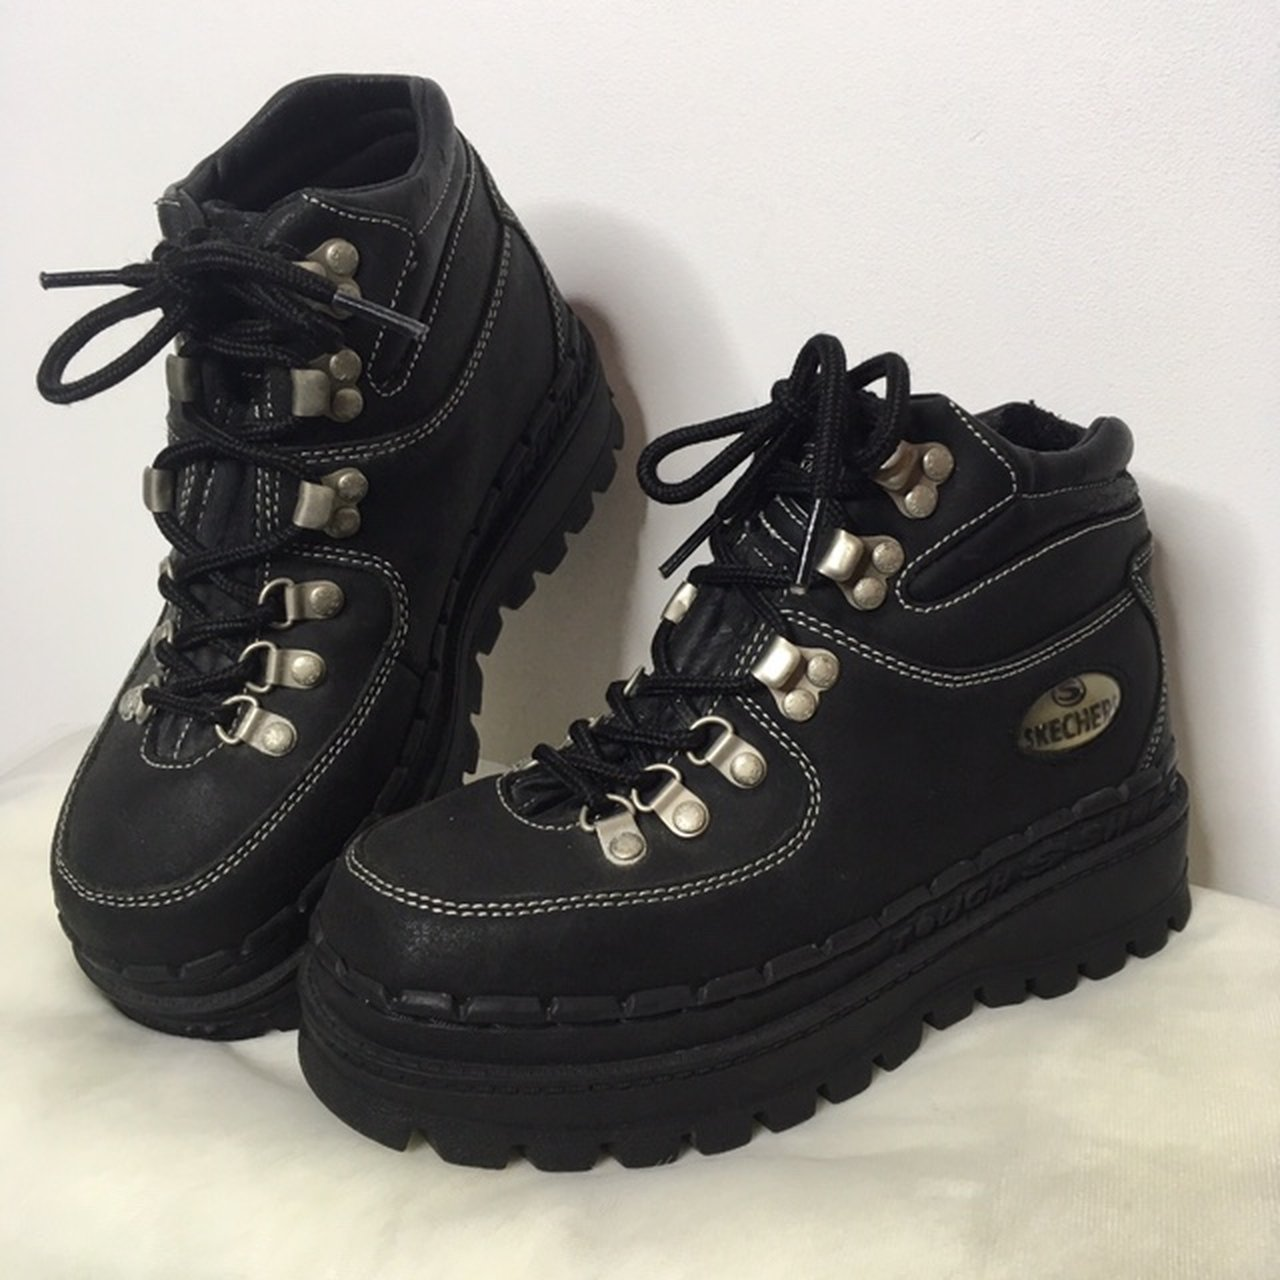 0e521e9686bf 90s Holy Grail Skechers Boots in Black. These are so hard to - Depop